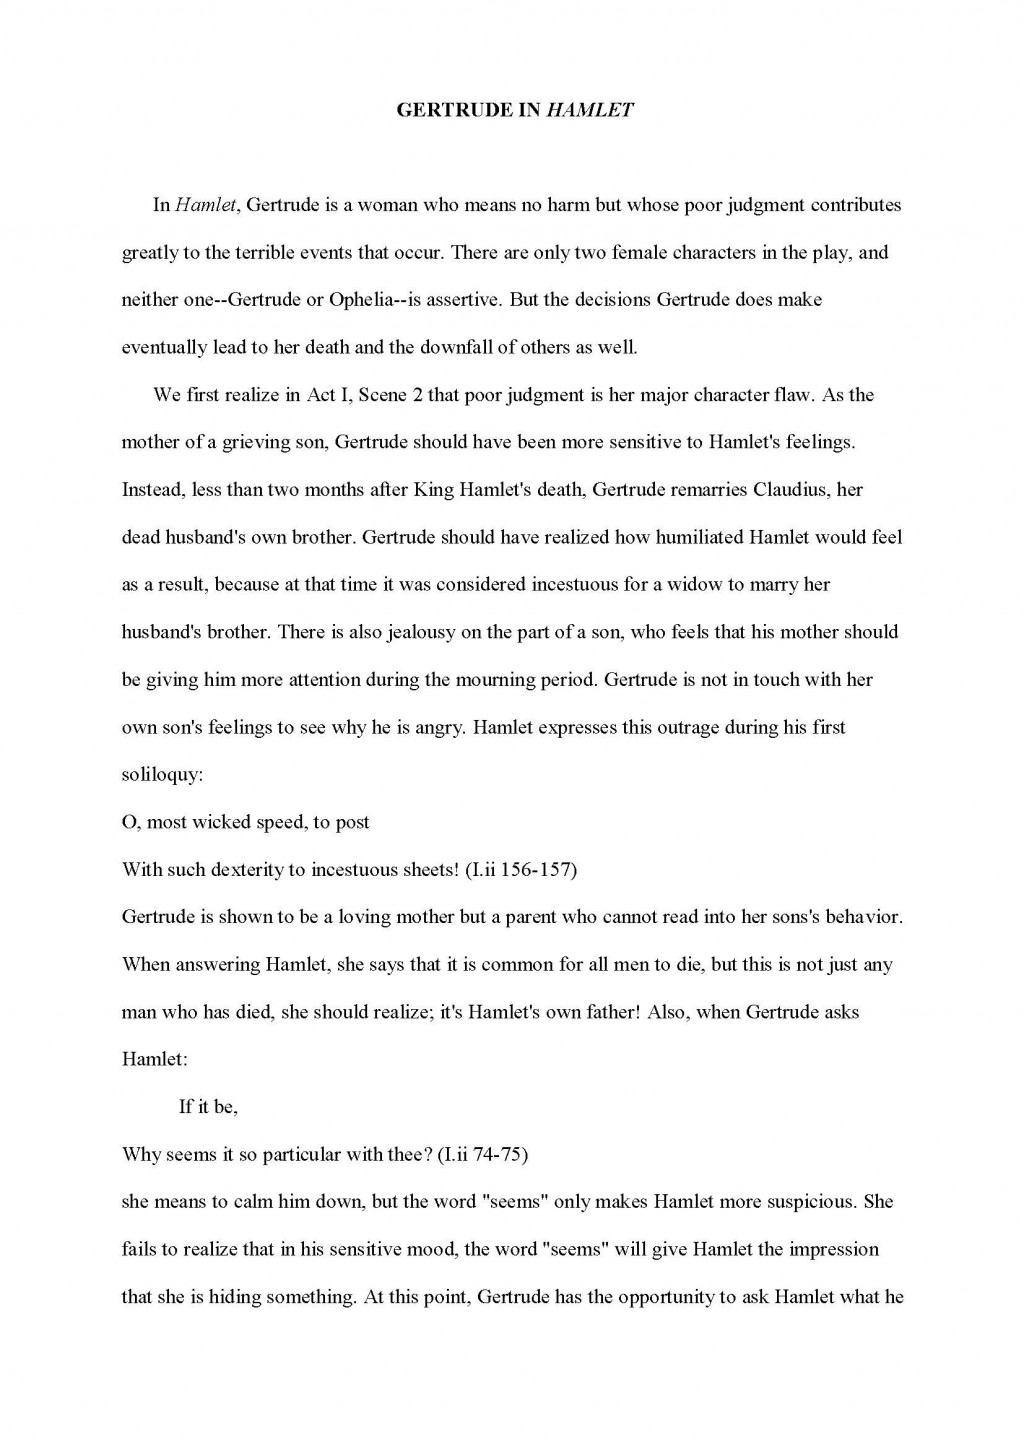 014 Analysis Essay Sample Example Literary Excellent Criticism On The Great Gatsby Ideas Conclusion Large